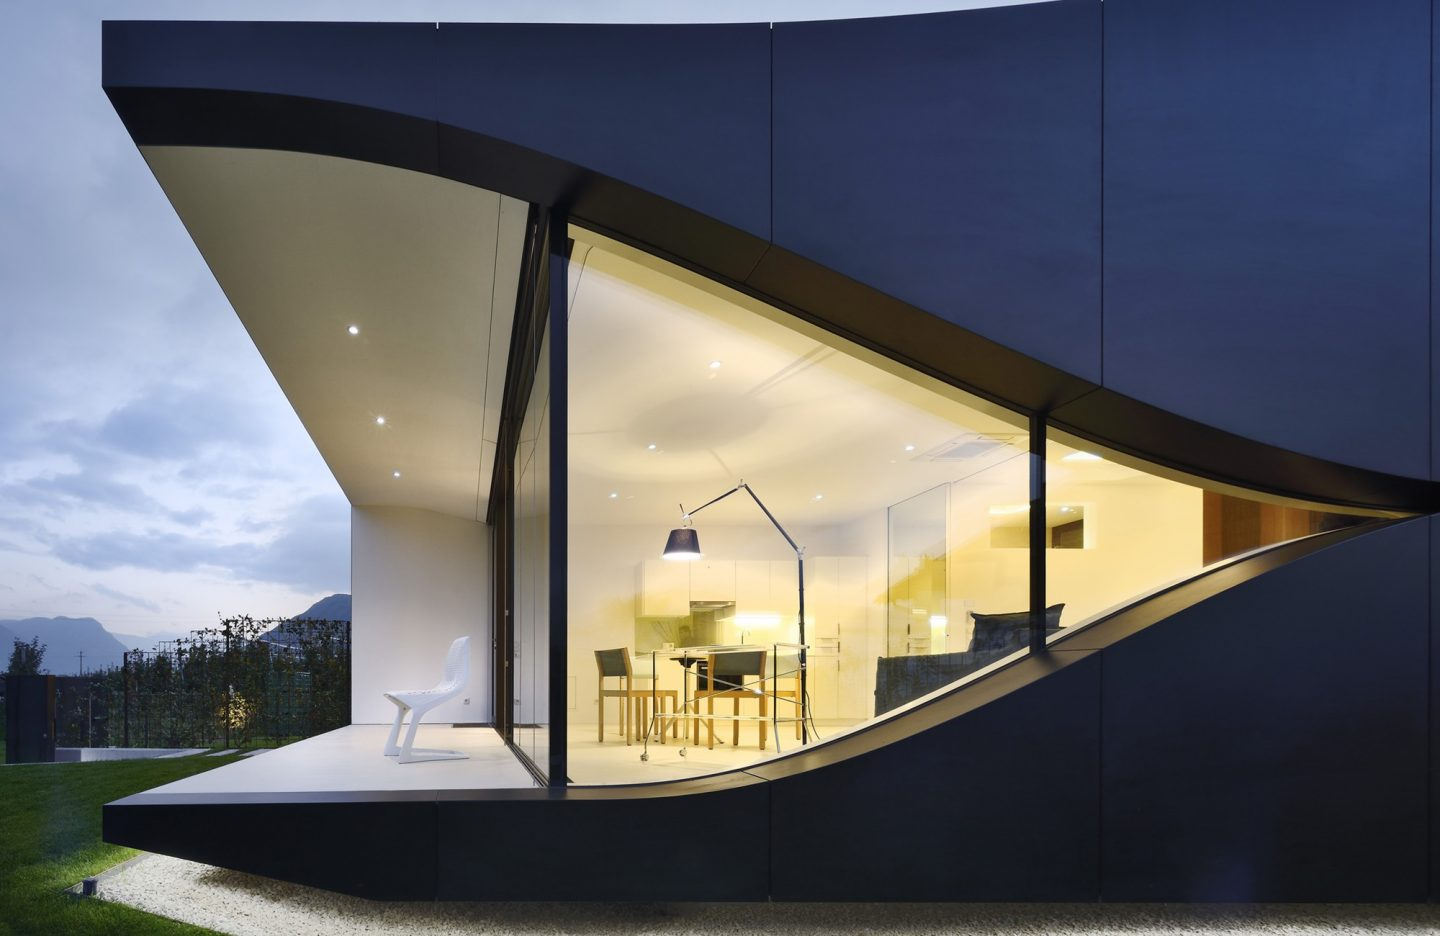 IGNANT-Architecture-South-Tyrol-Mirror-Houses-01 copy